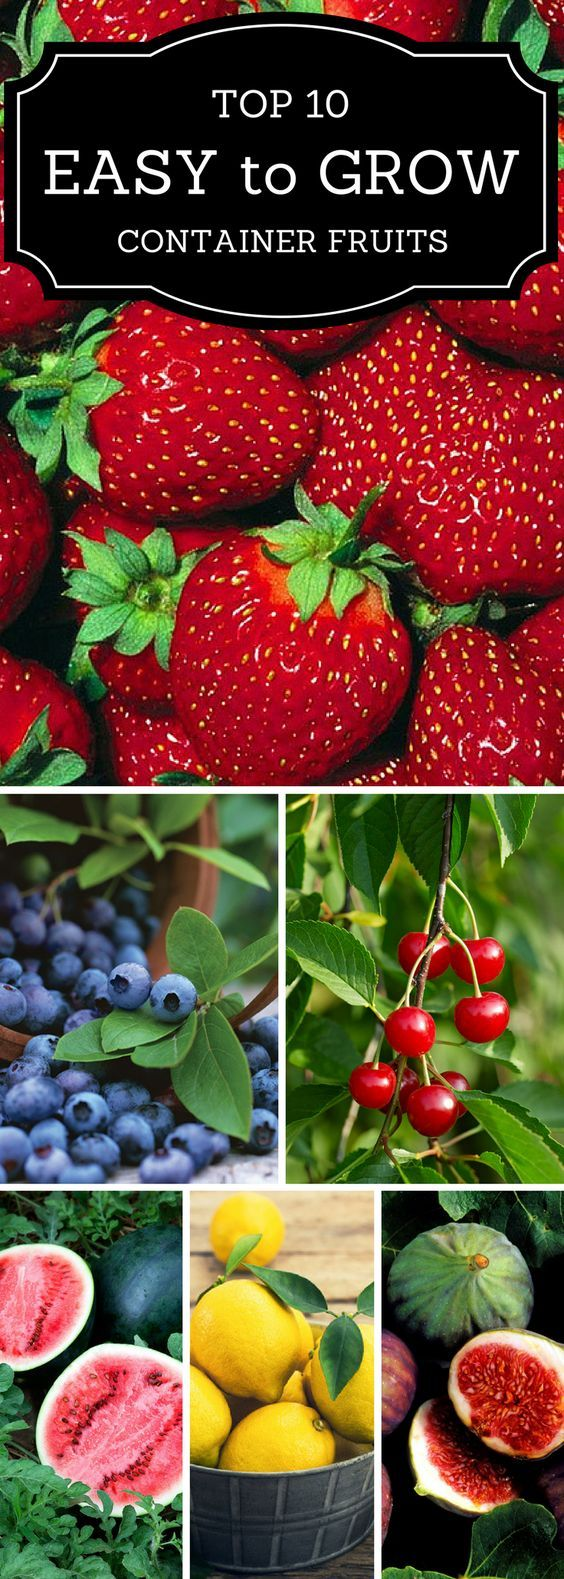 Top 10 Fruits You Can Grow In Containers Cultivo De